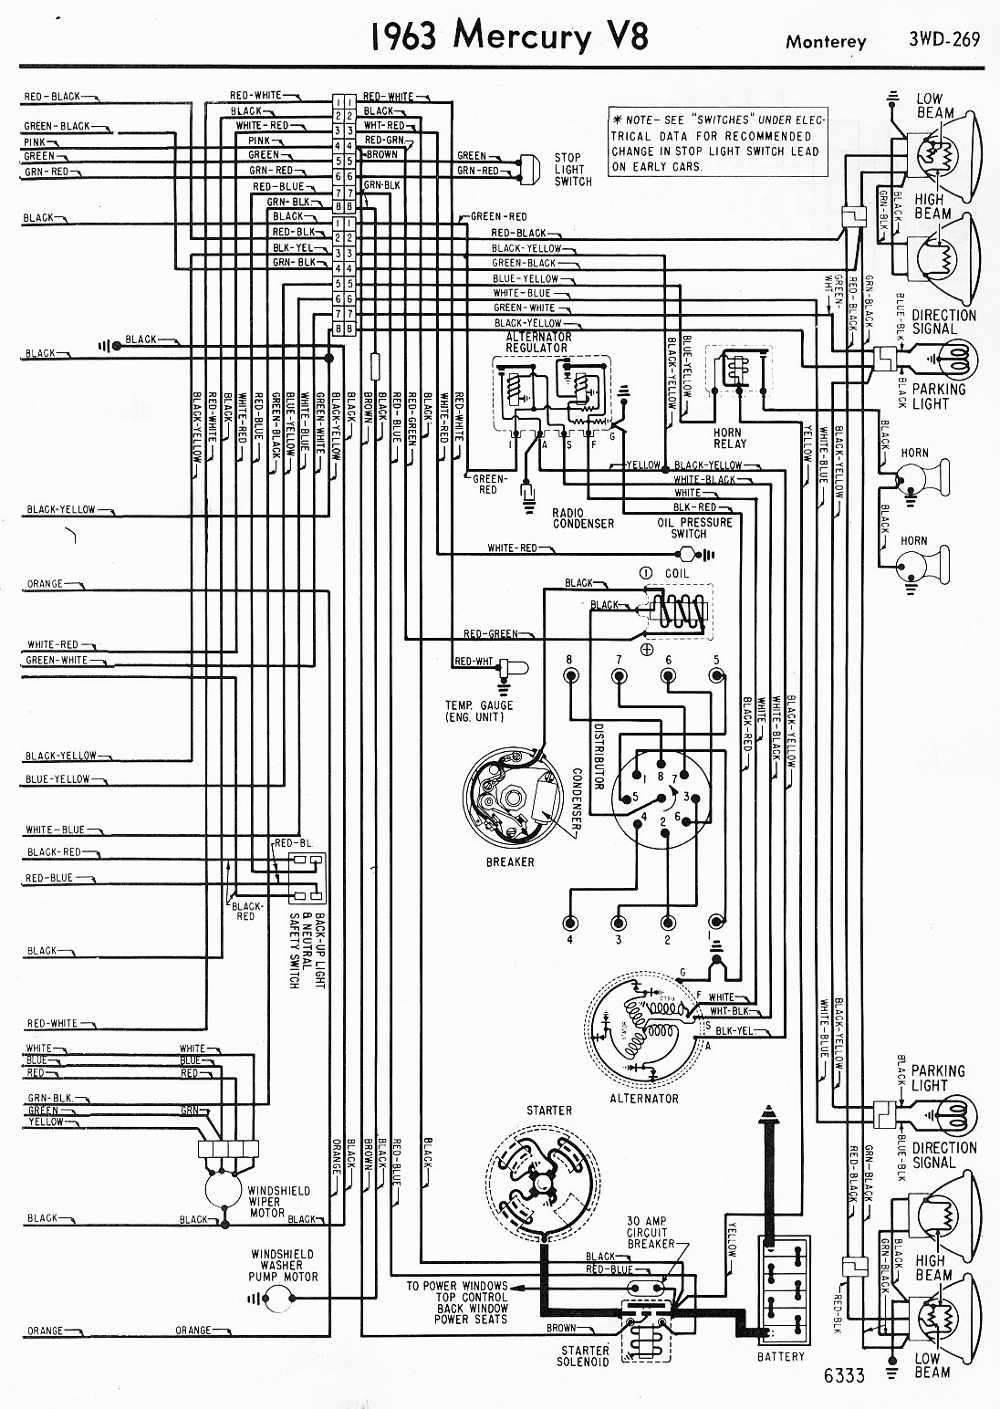 wiring diagrams of 1957 plymouth v8 all models wiring diagram for you wiring diagrams of 1959 mercury v8 all models [ 1000 x 1409 Pixel ]